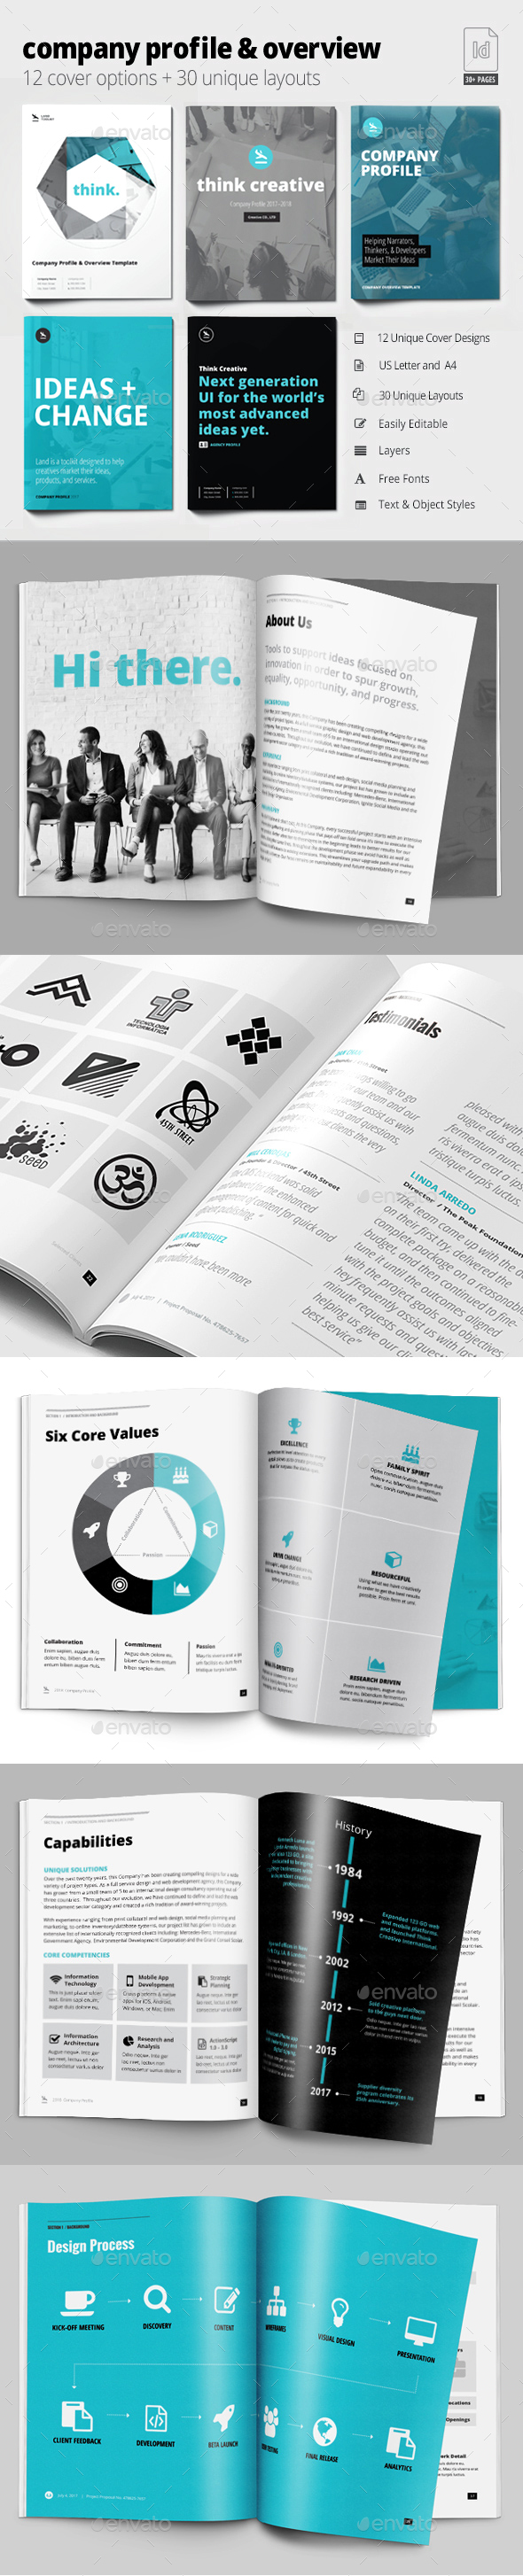 Company Profile & Overview Template - Brochures Print Templates